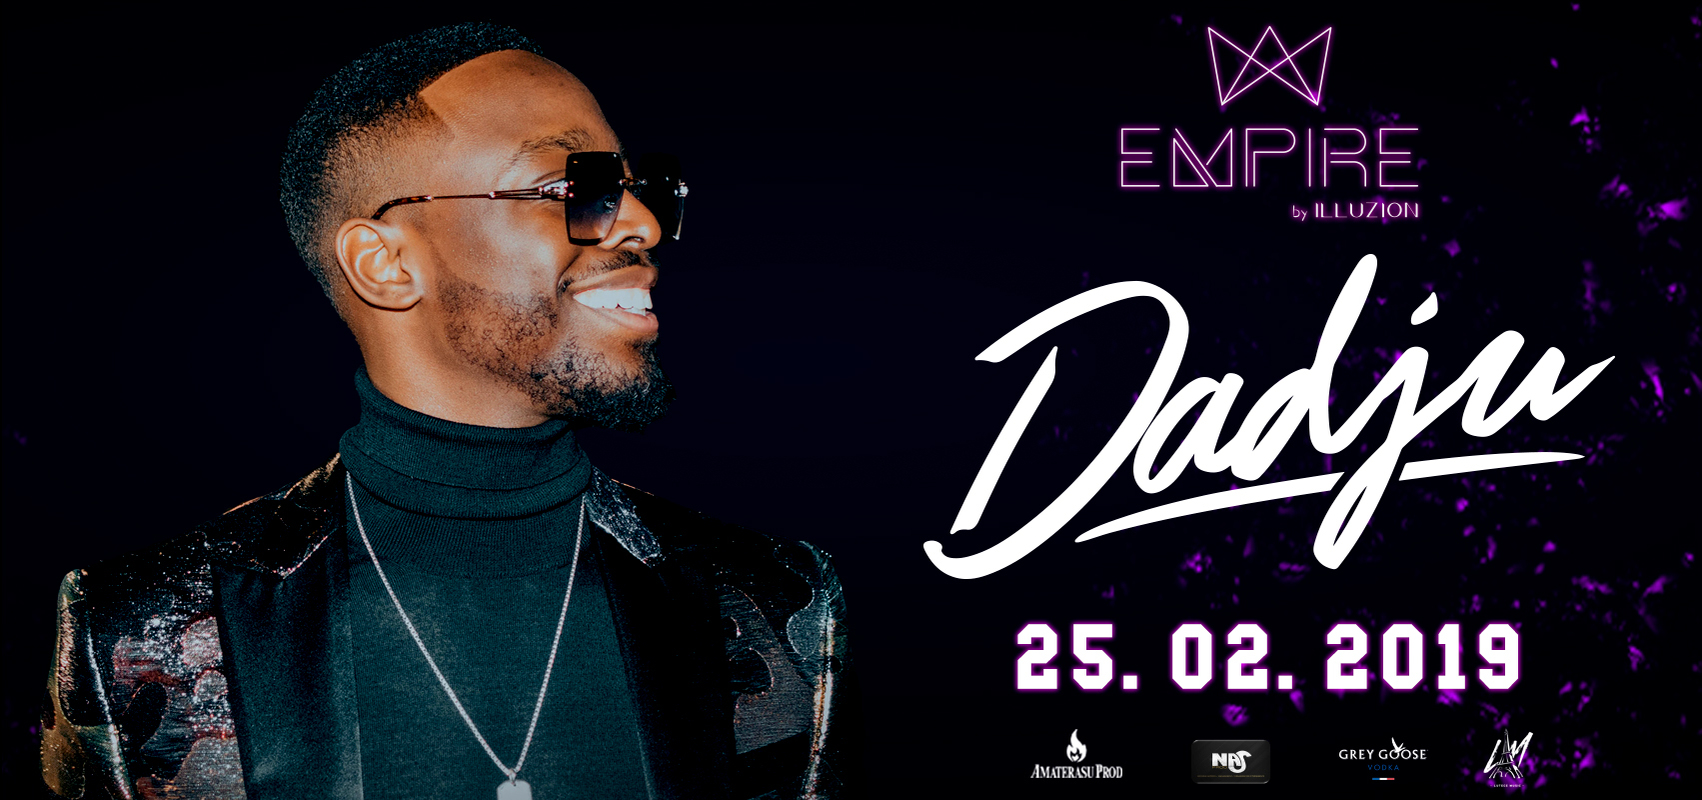 Empire 2019 02 25 dadju event pop